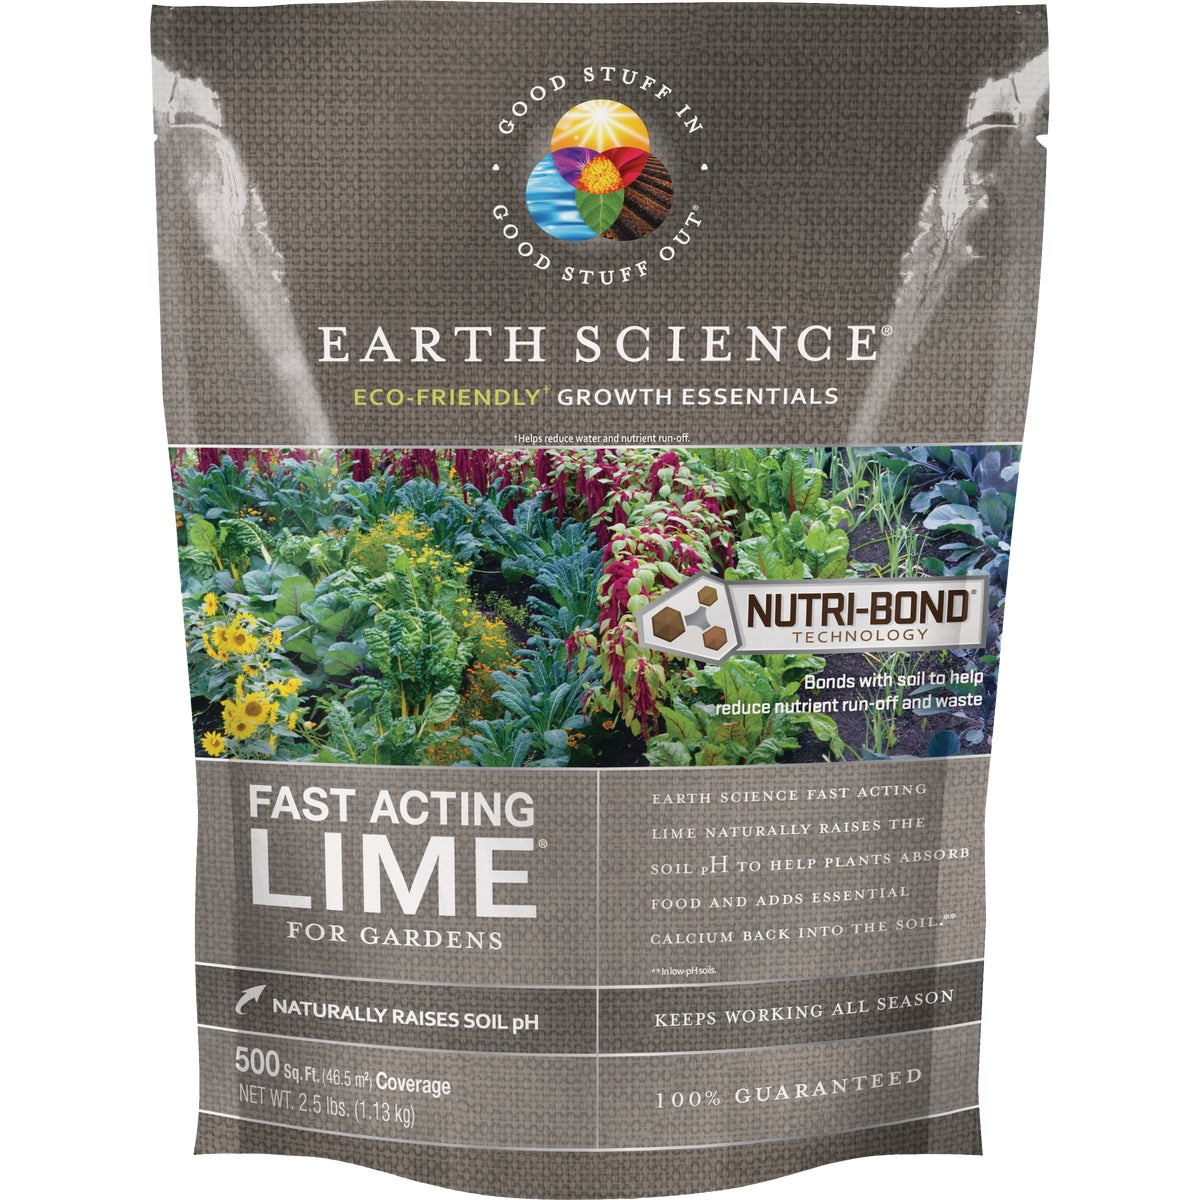 2.5LB GARDEN LIME - 10612-6 by Encap Llc